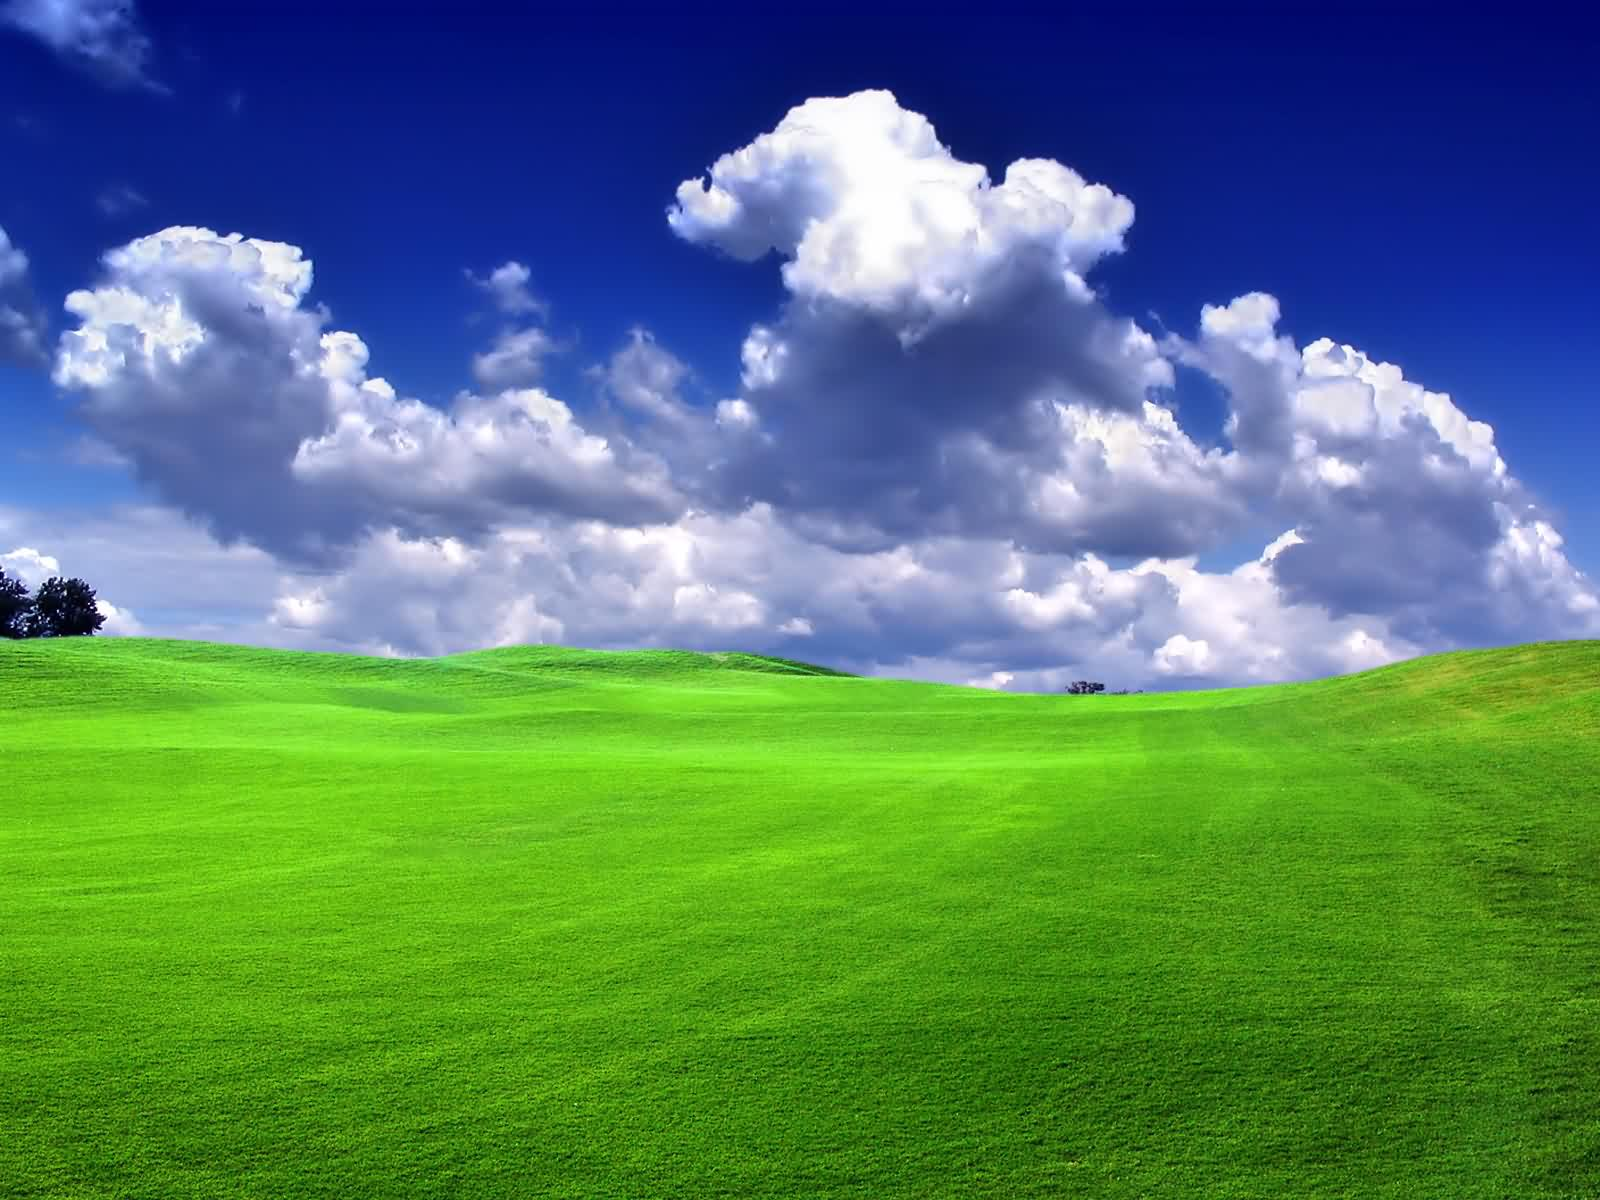 HD Nature Wallpapers 2010 | Wide Screen Nature Wallpaper 2010 .